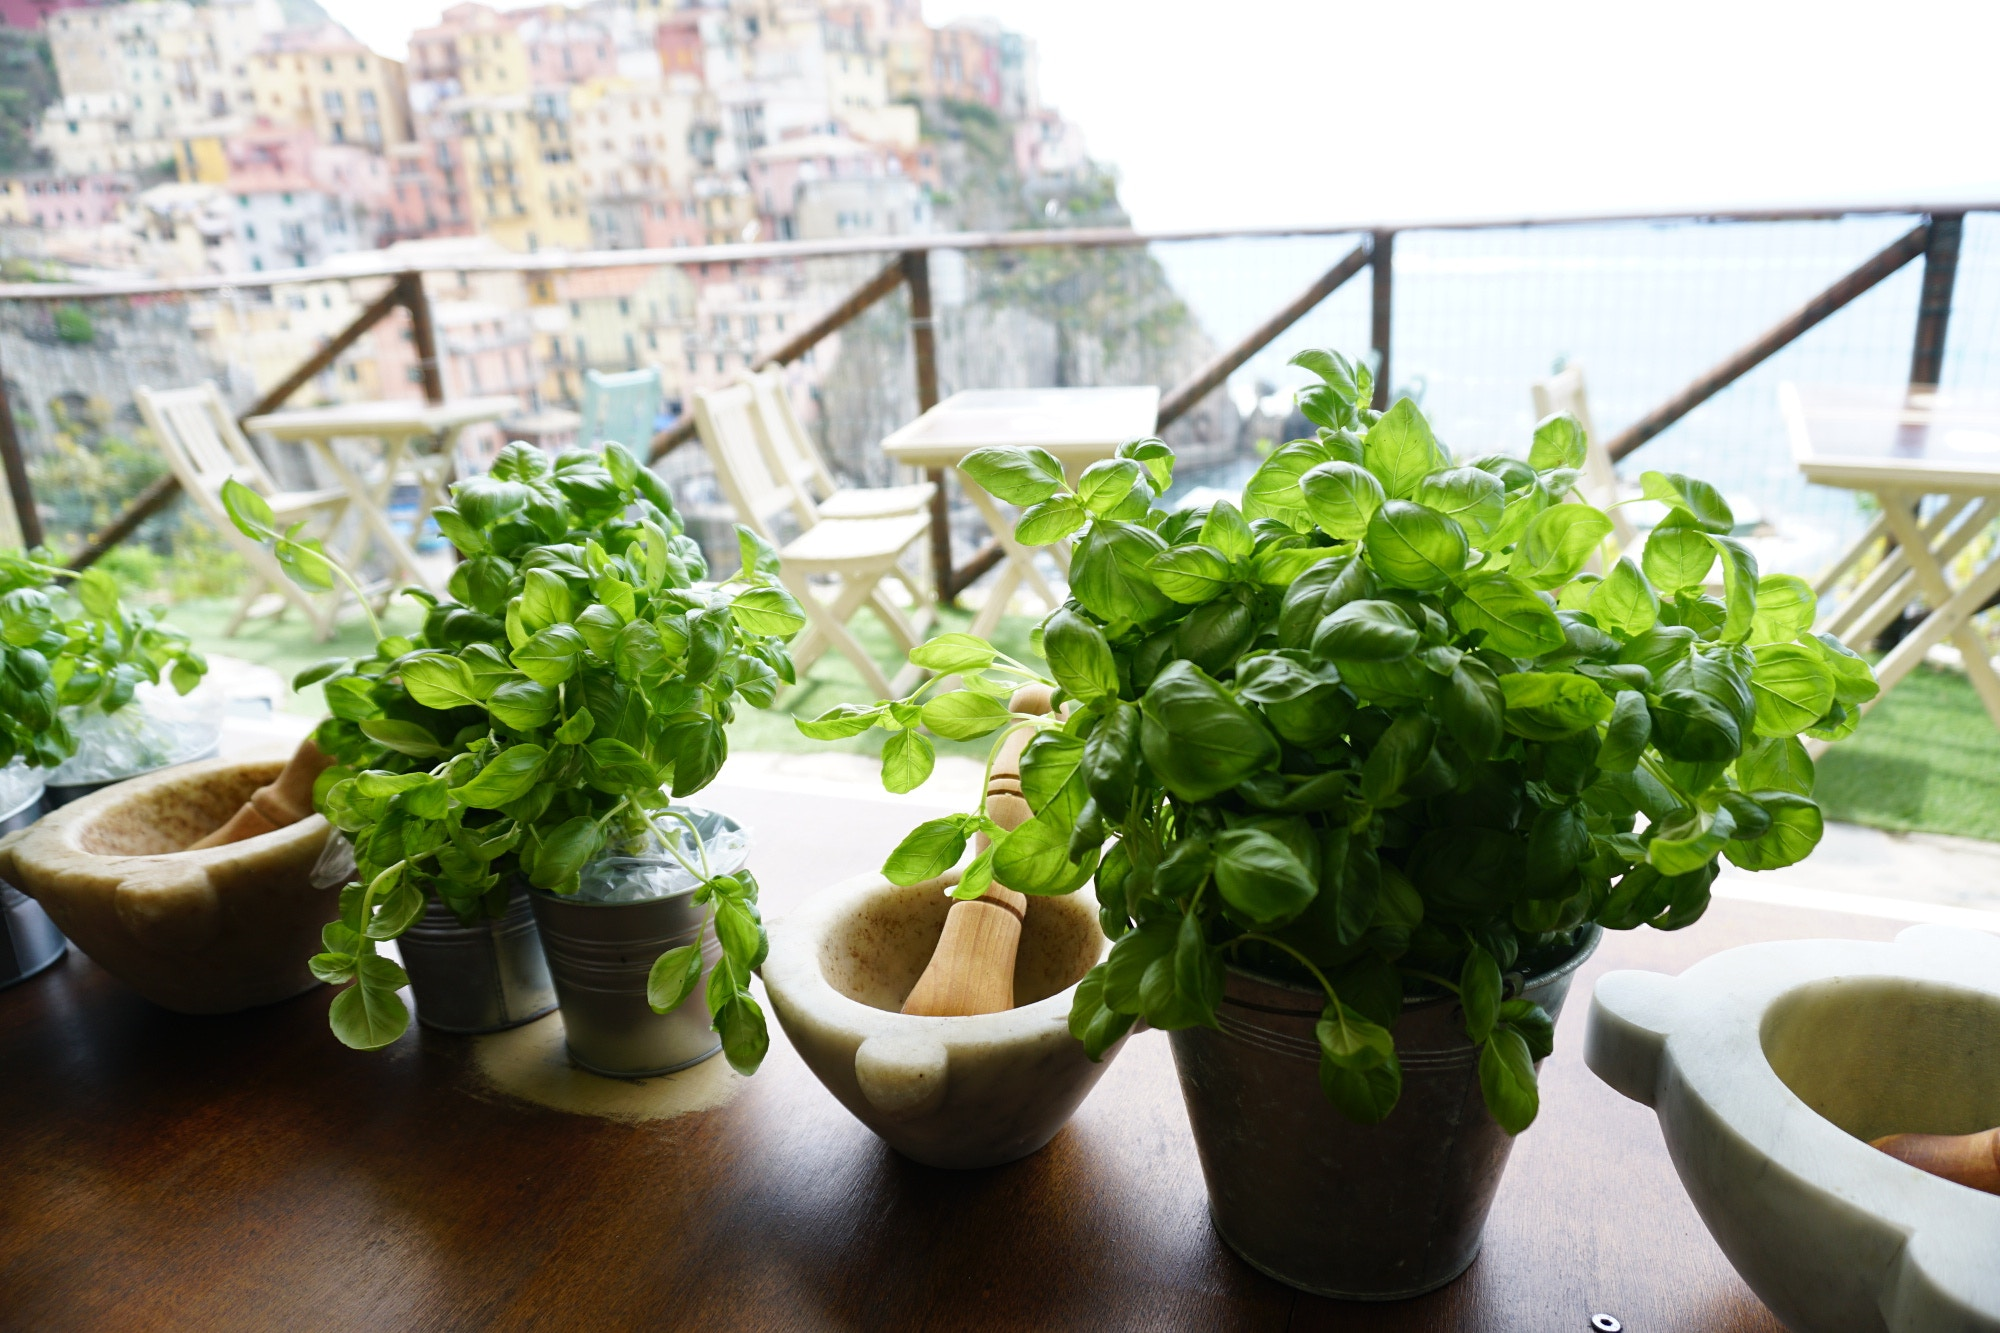 Pesto plants and mortars overlooking Italy's colourful Cinque Terre